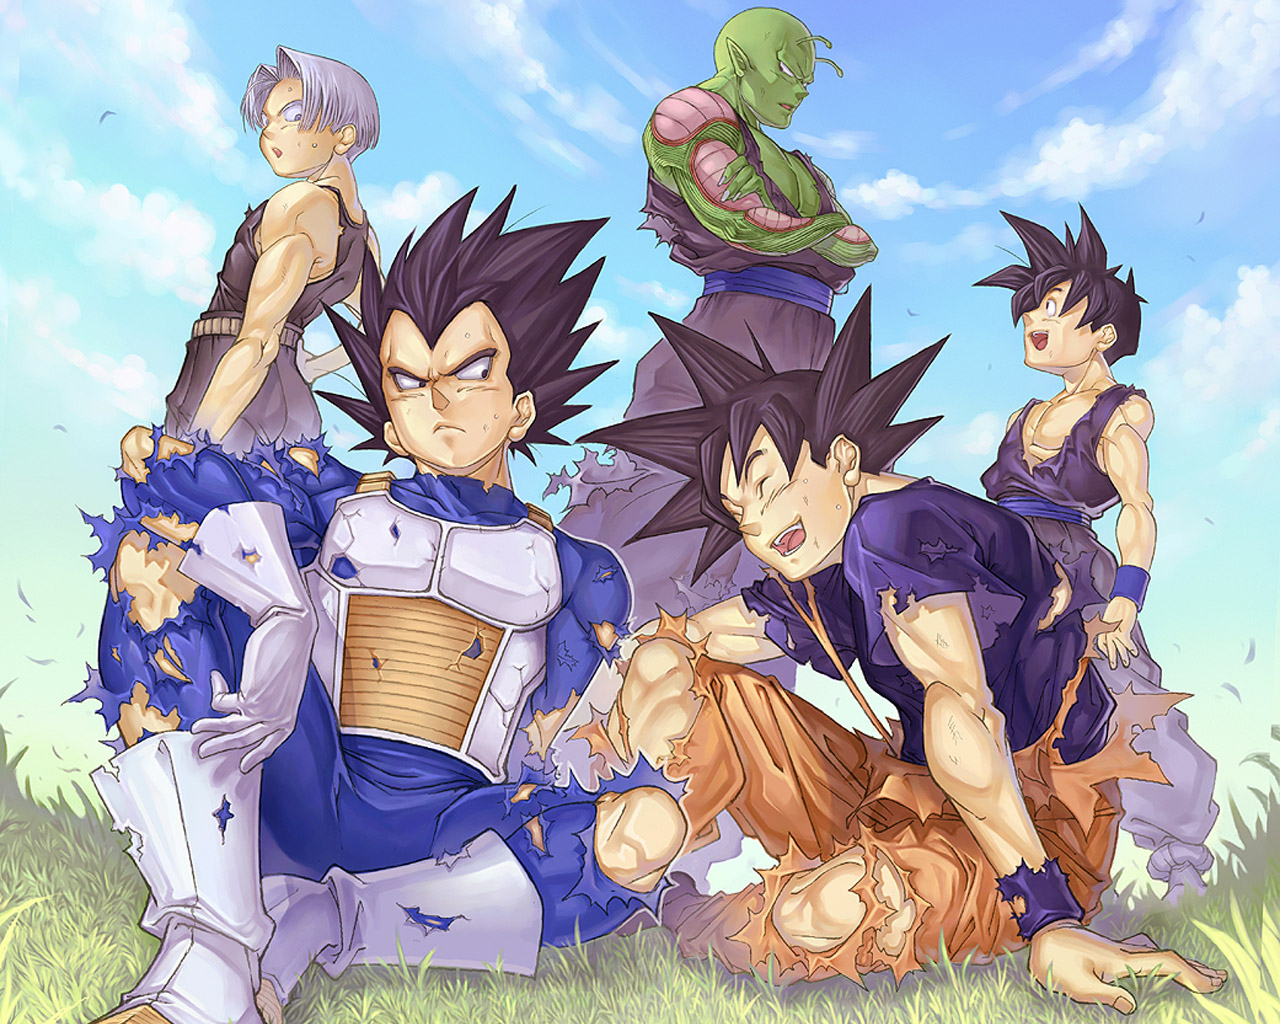 http://2.bp.blogspot.com/-mJciUO7yYog/USZZAnZfGmI/AAAAAAAADDo/1lcNxHQ2O64/s1600/6854_dragon_ball_z_hd_wallpapers.jpg